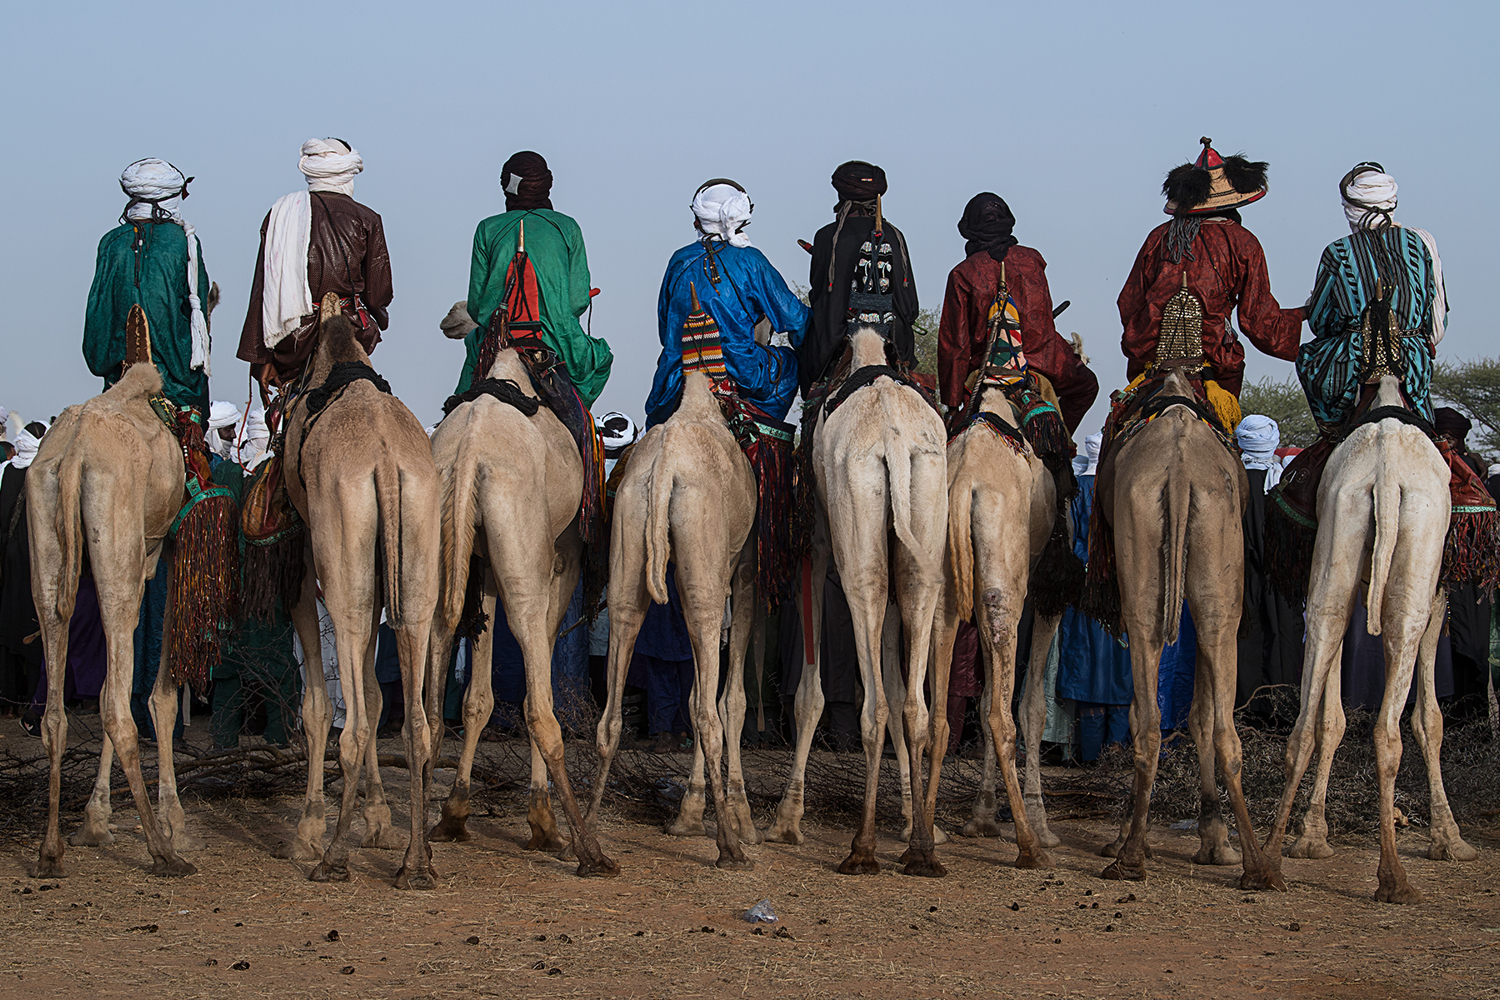 Papier peint photo Watching The Gerewol Festival From The Camels - Niger